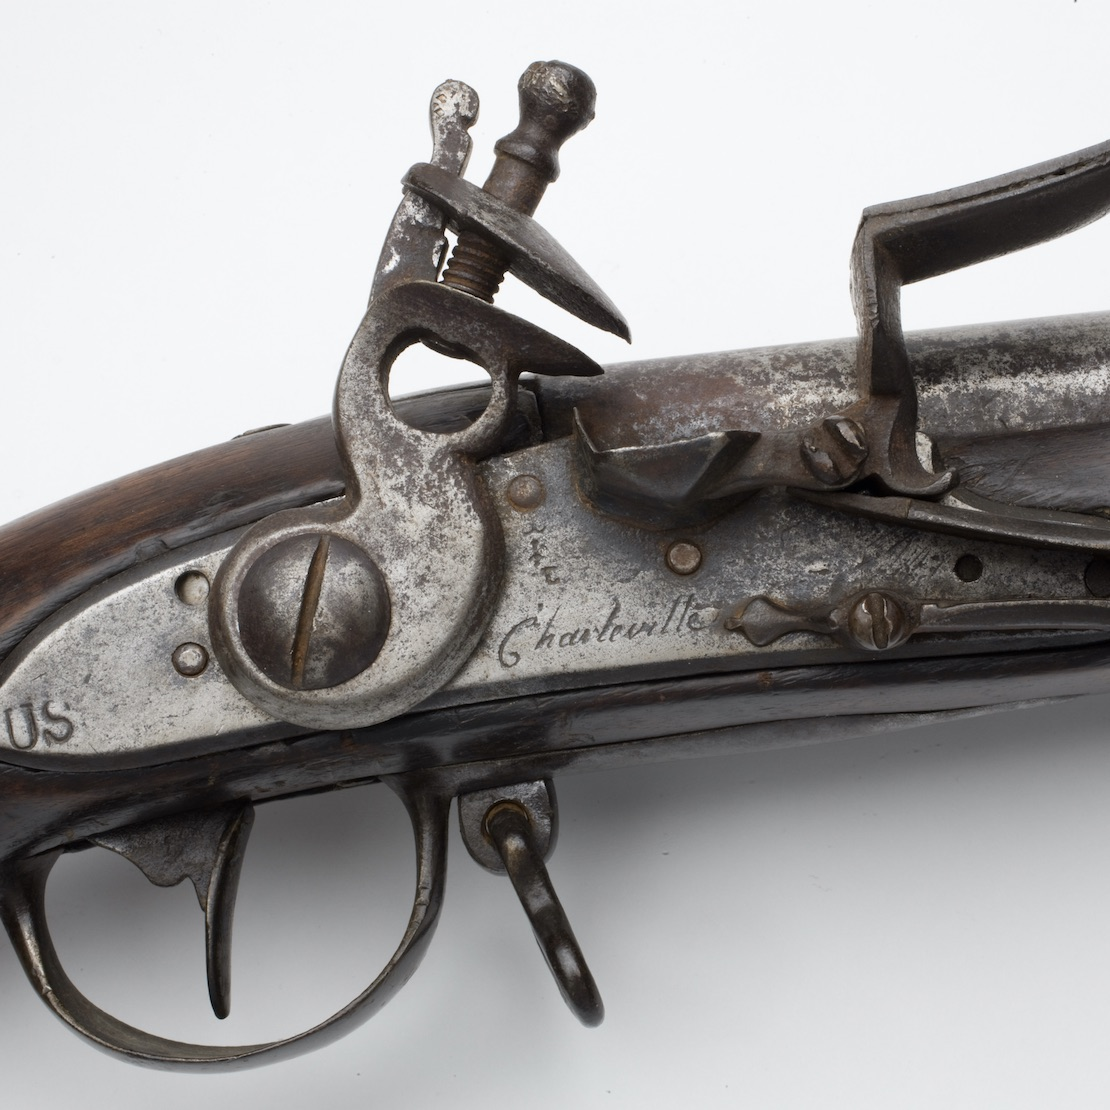 The lock of a Charleville musket, showing French and American marks, illustrates details used to interpret artifacts of the Revolutionary War.